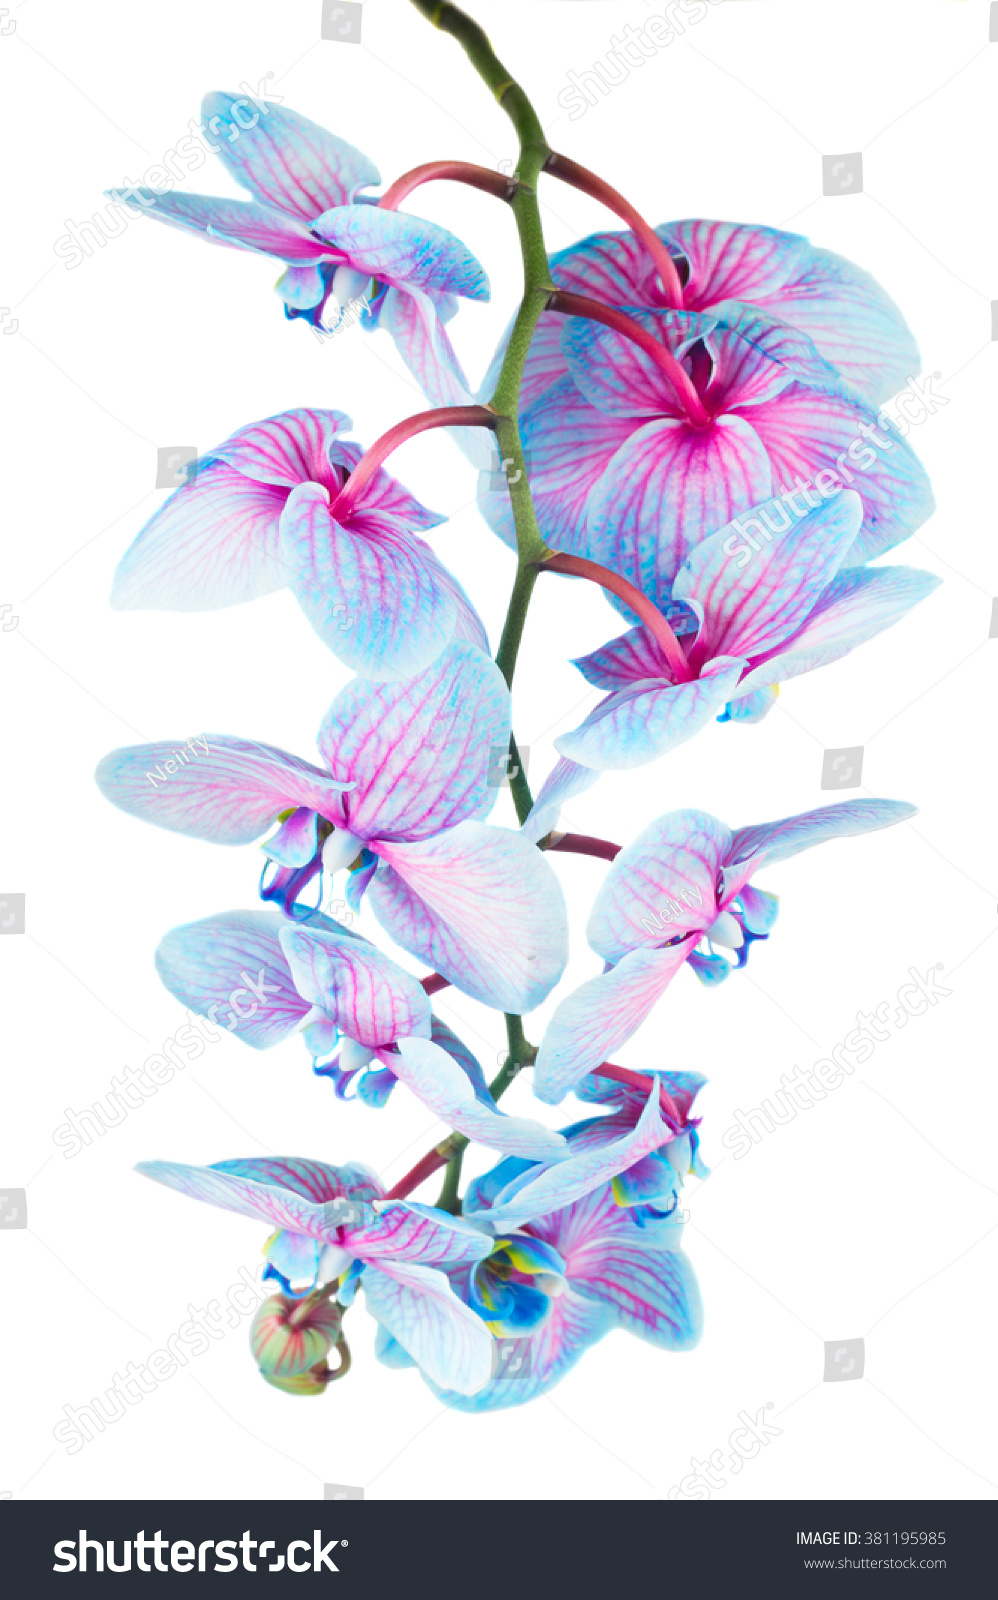 Stem Of Fresh Blue Orchid Flowers And Buds Close Up Isolated On